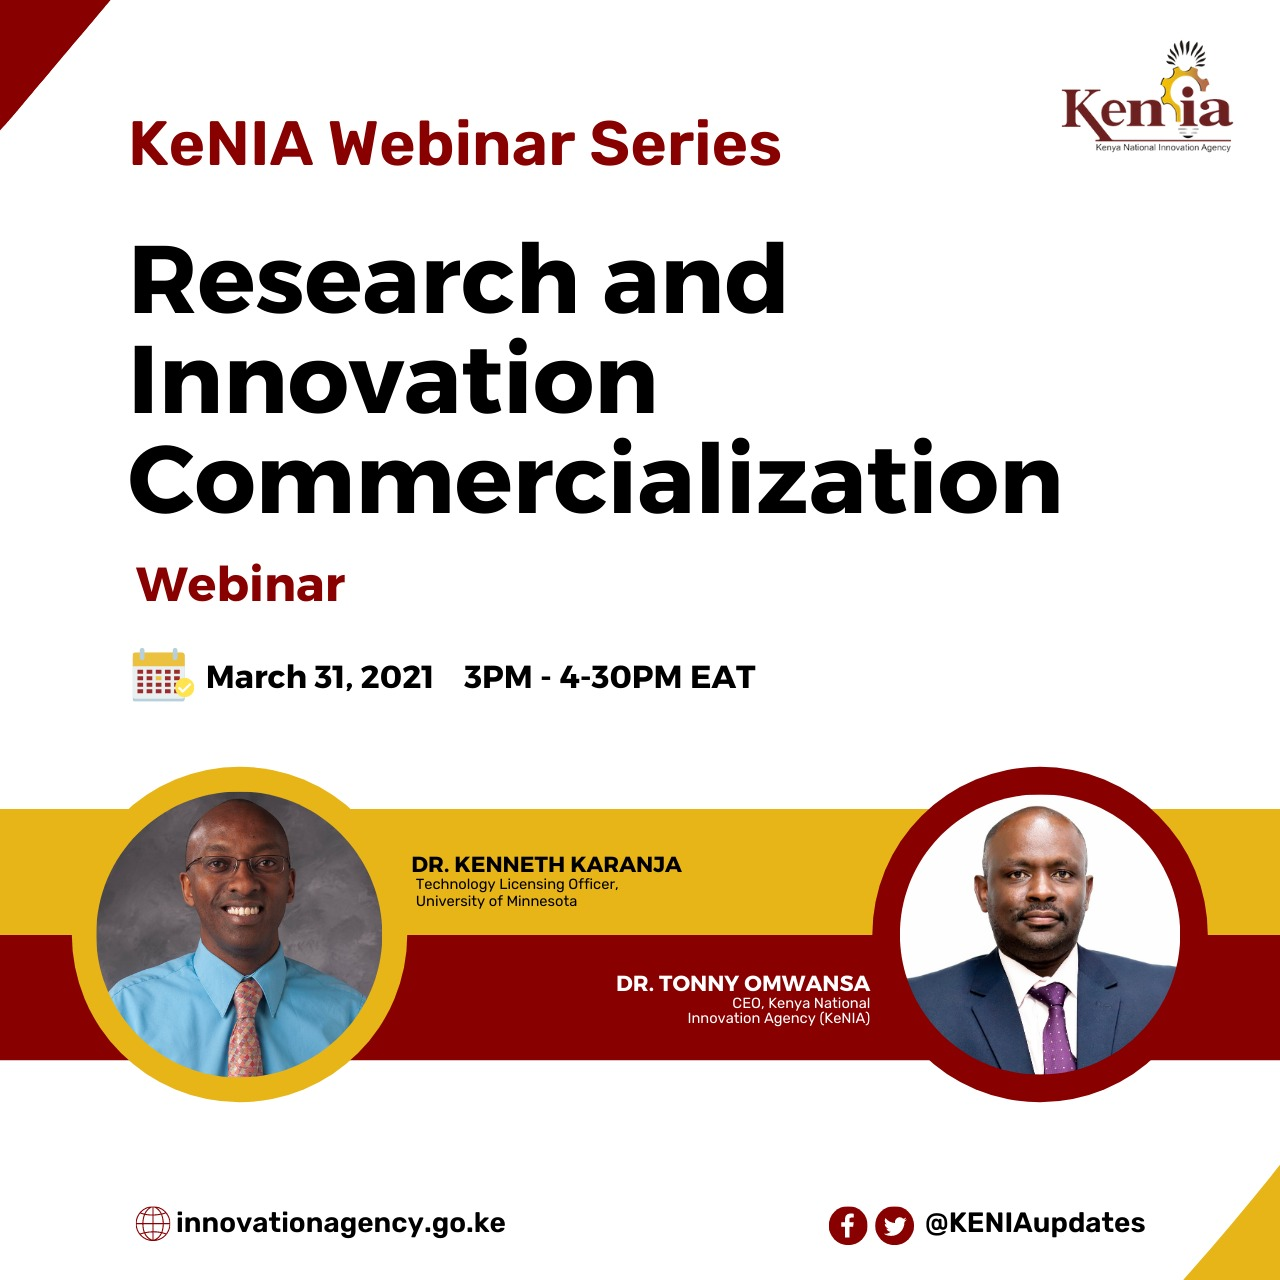 Research and Innovation Commercialization Webinar